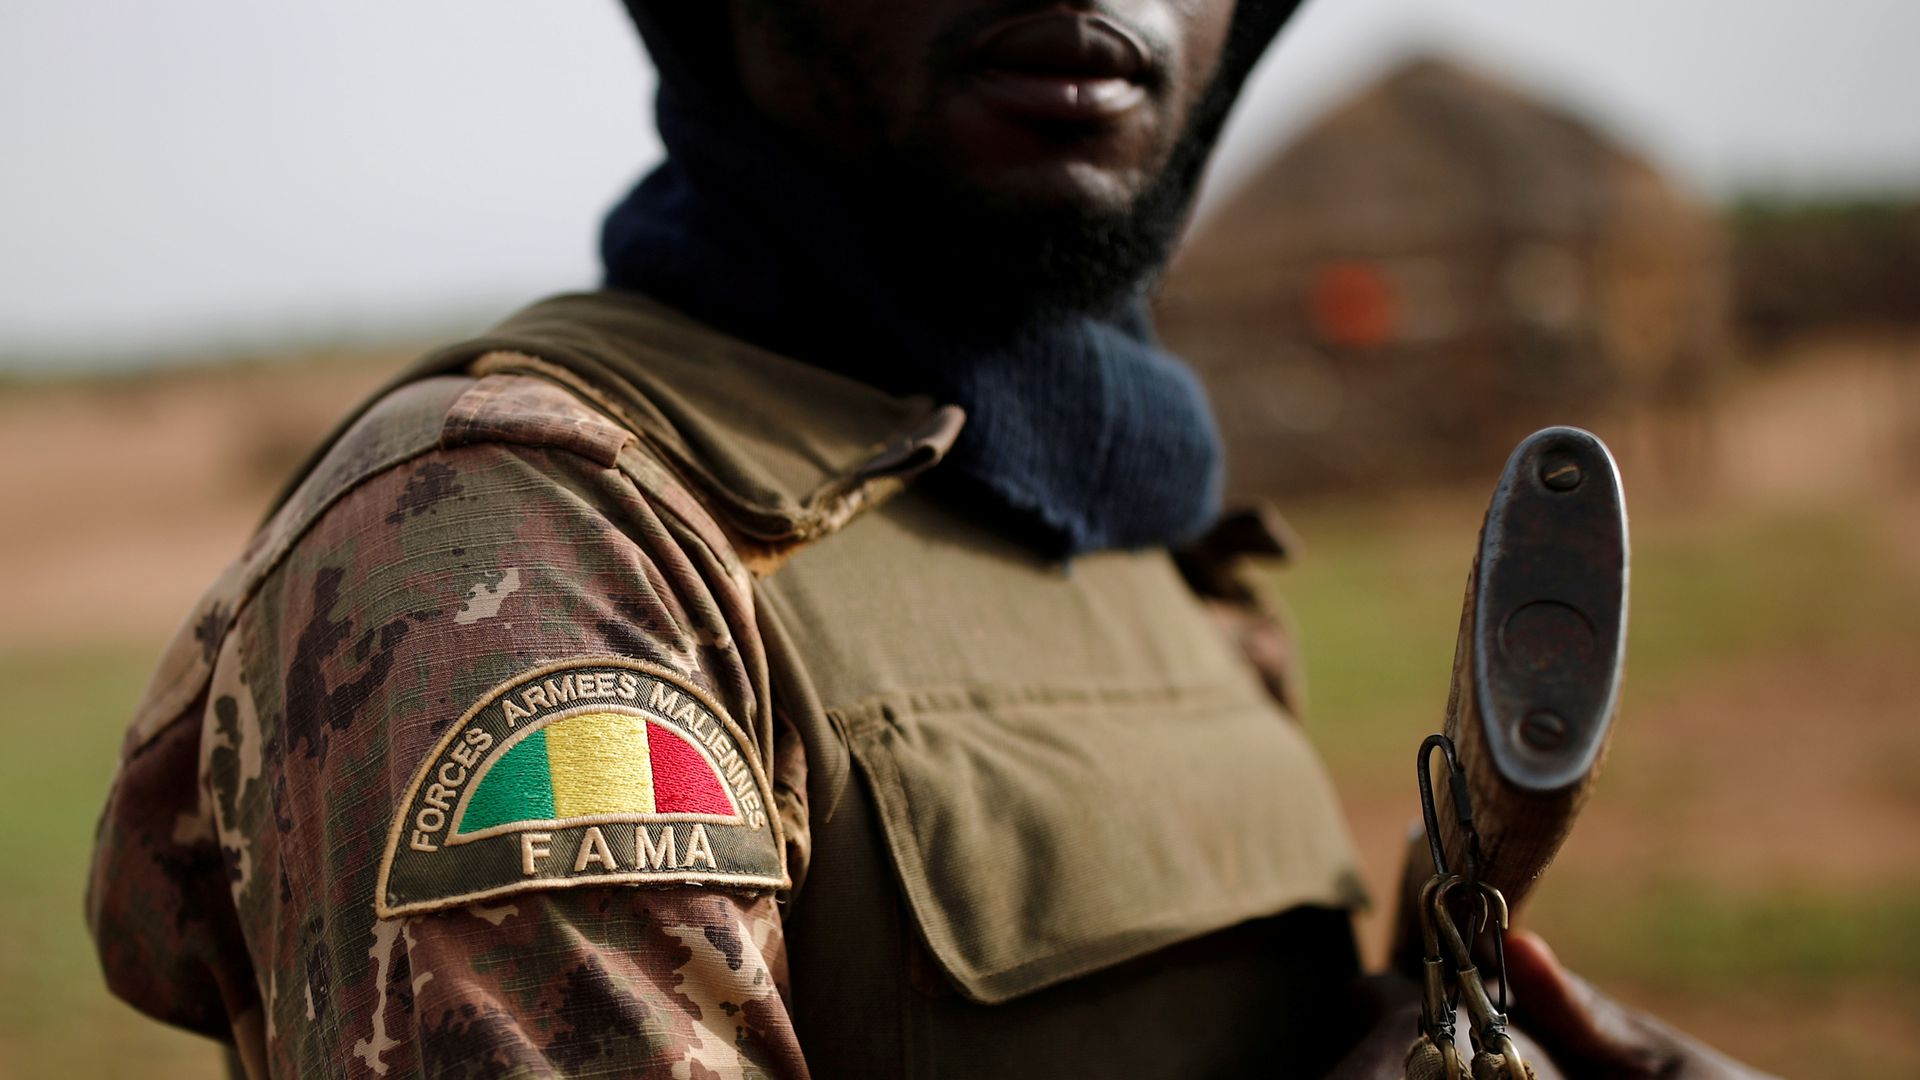 In this image, an armed soldier holds a gun and his sleeve is decorated with a patch that bears the Mali flag